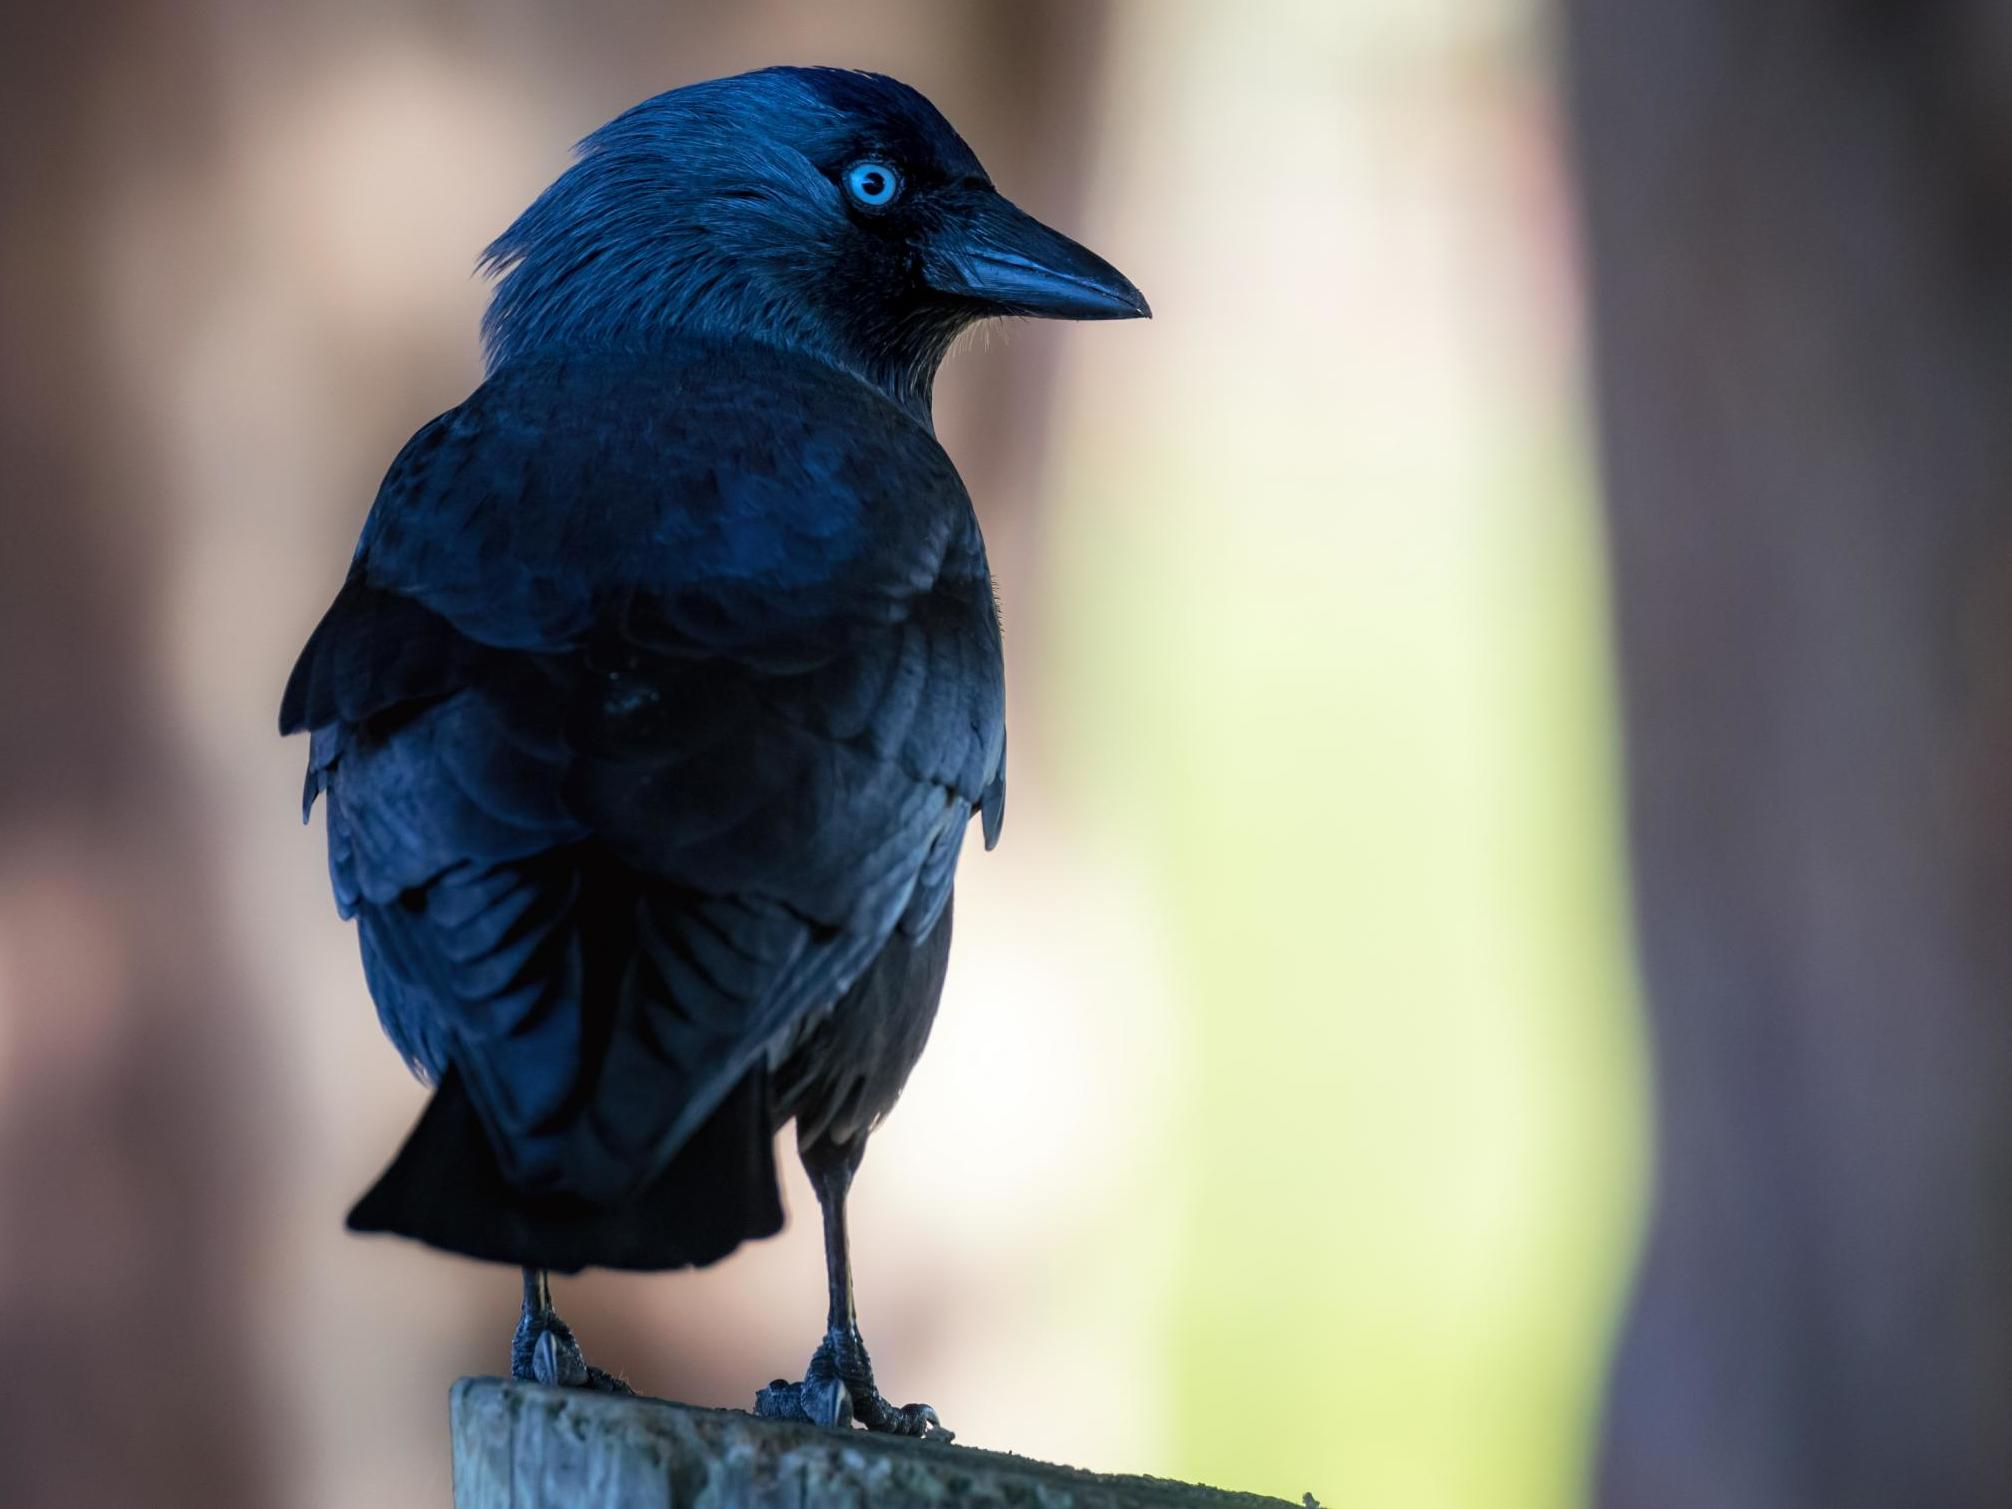 Jackdaws can identify 'dangerous' humans, scientists say